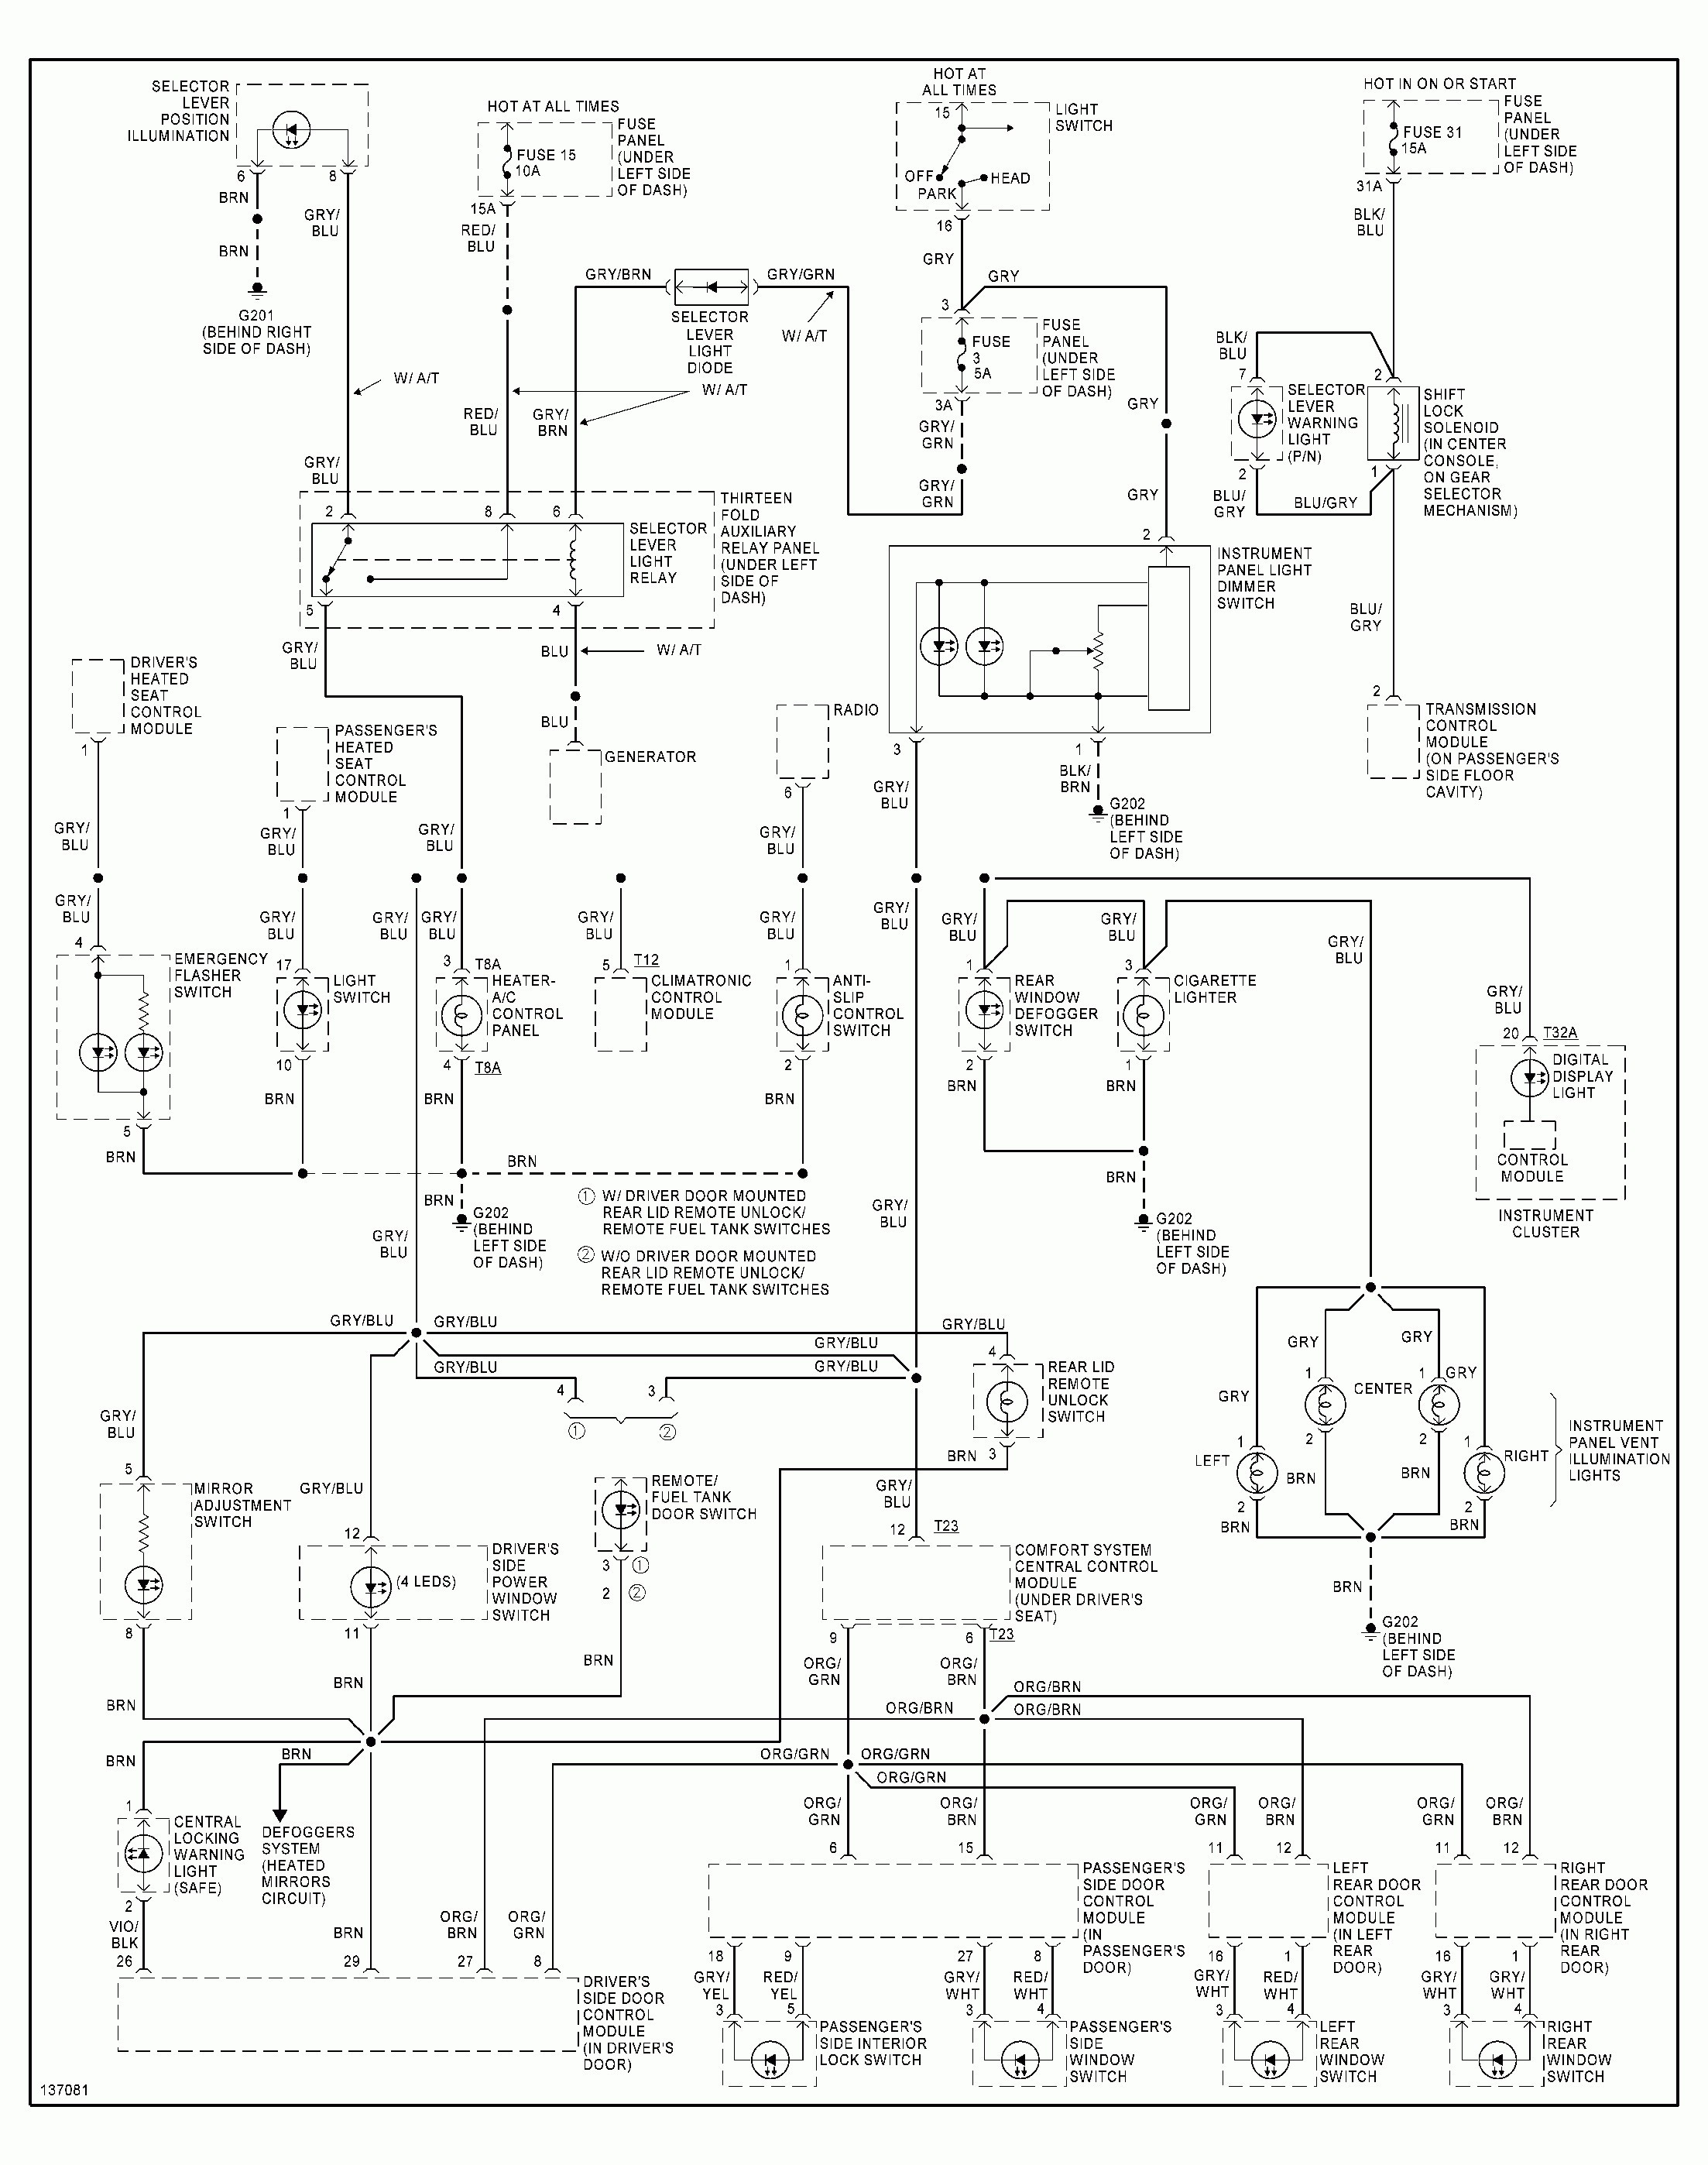 2010 Mazda 3 Engine Wiring Diagram] Volkswagen Vw Golf Jetta Mk3 A3 Wiring Diagram Of 2010 Mazda 3 Engine Wiring